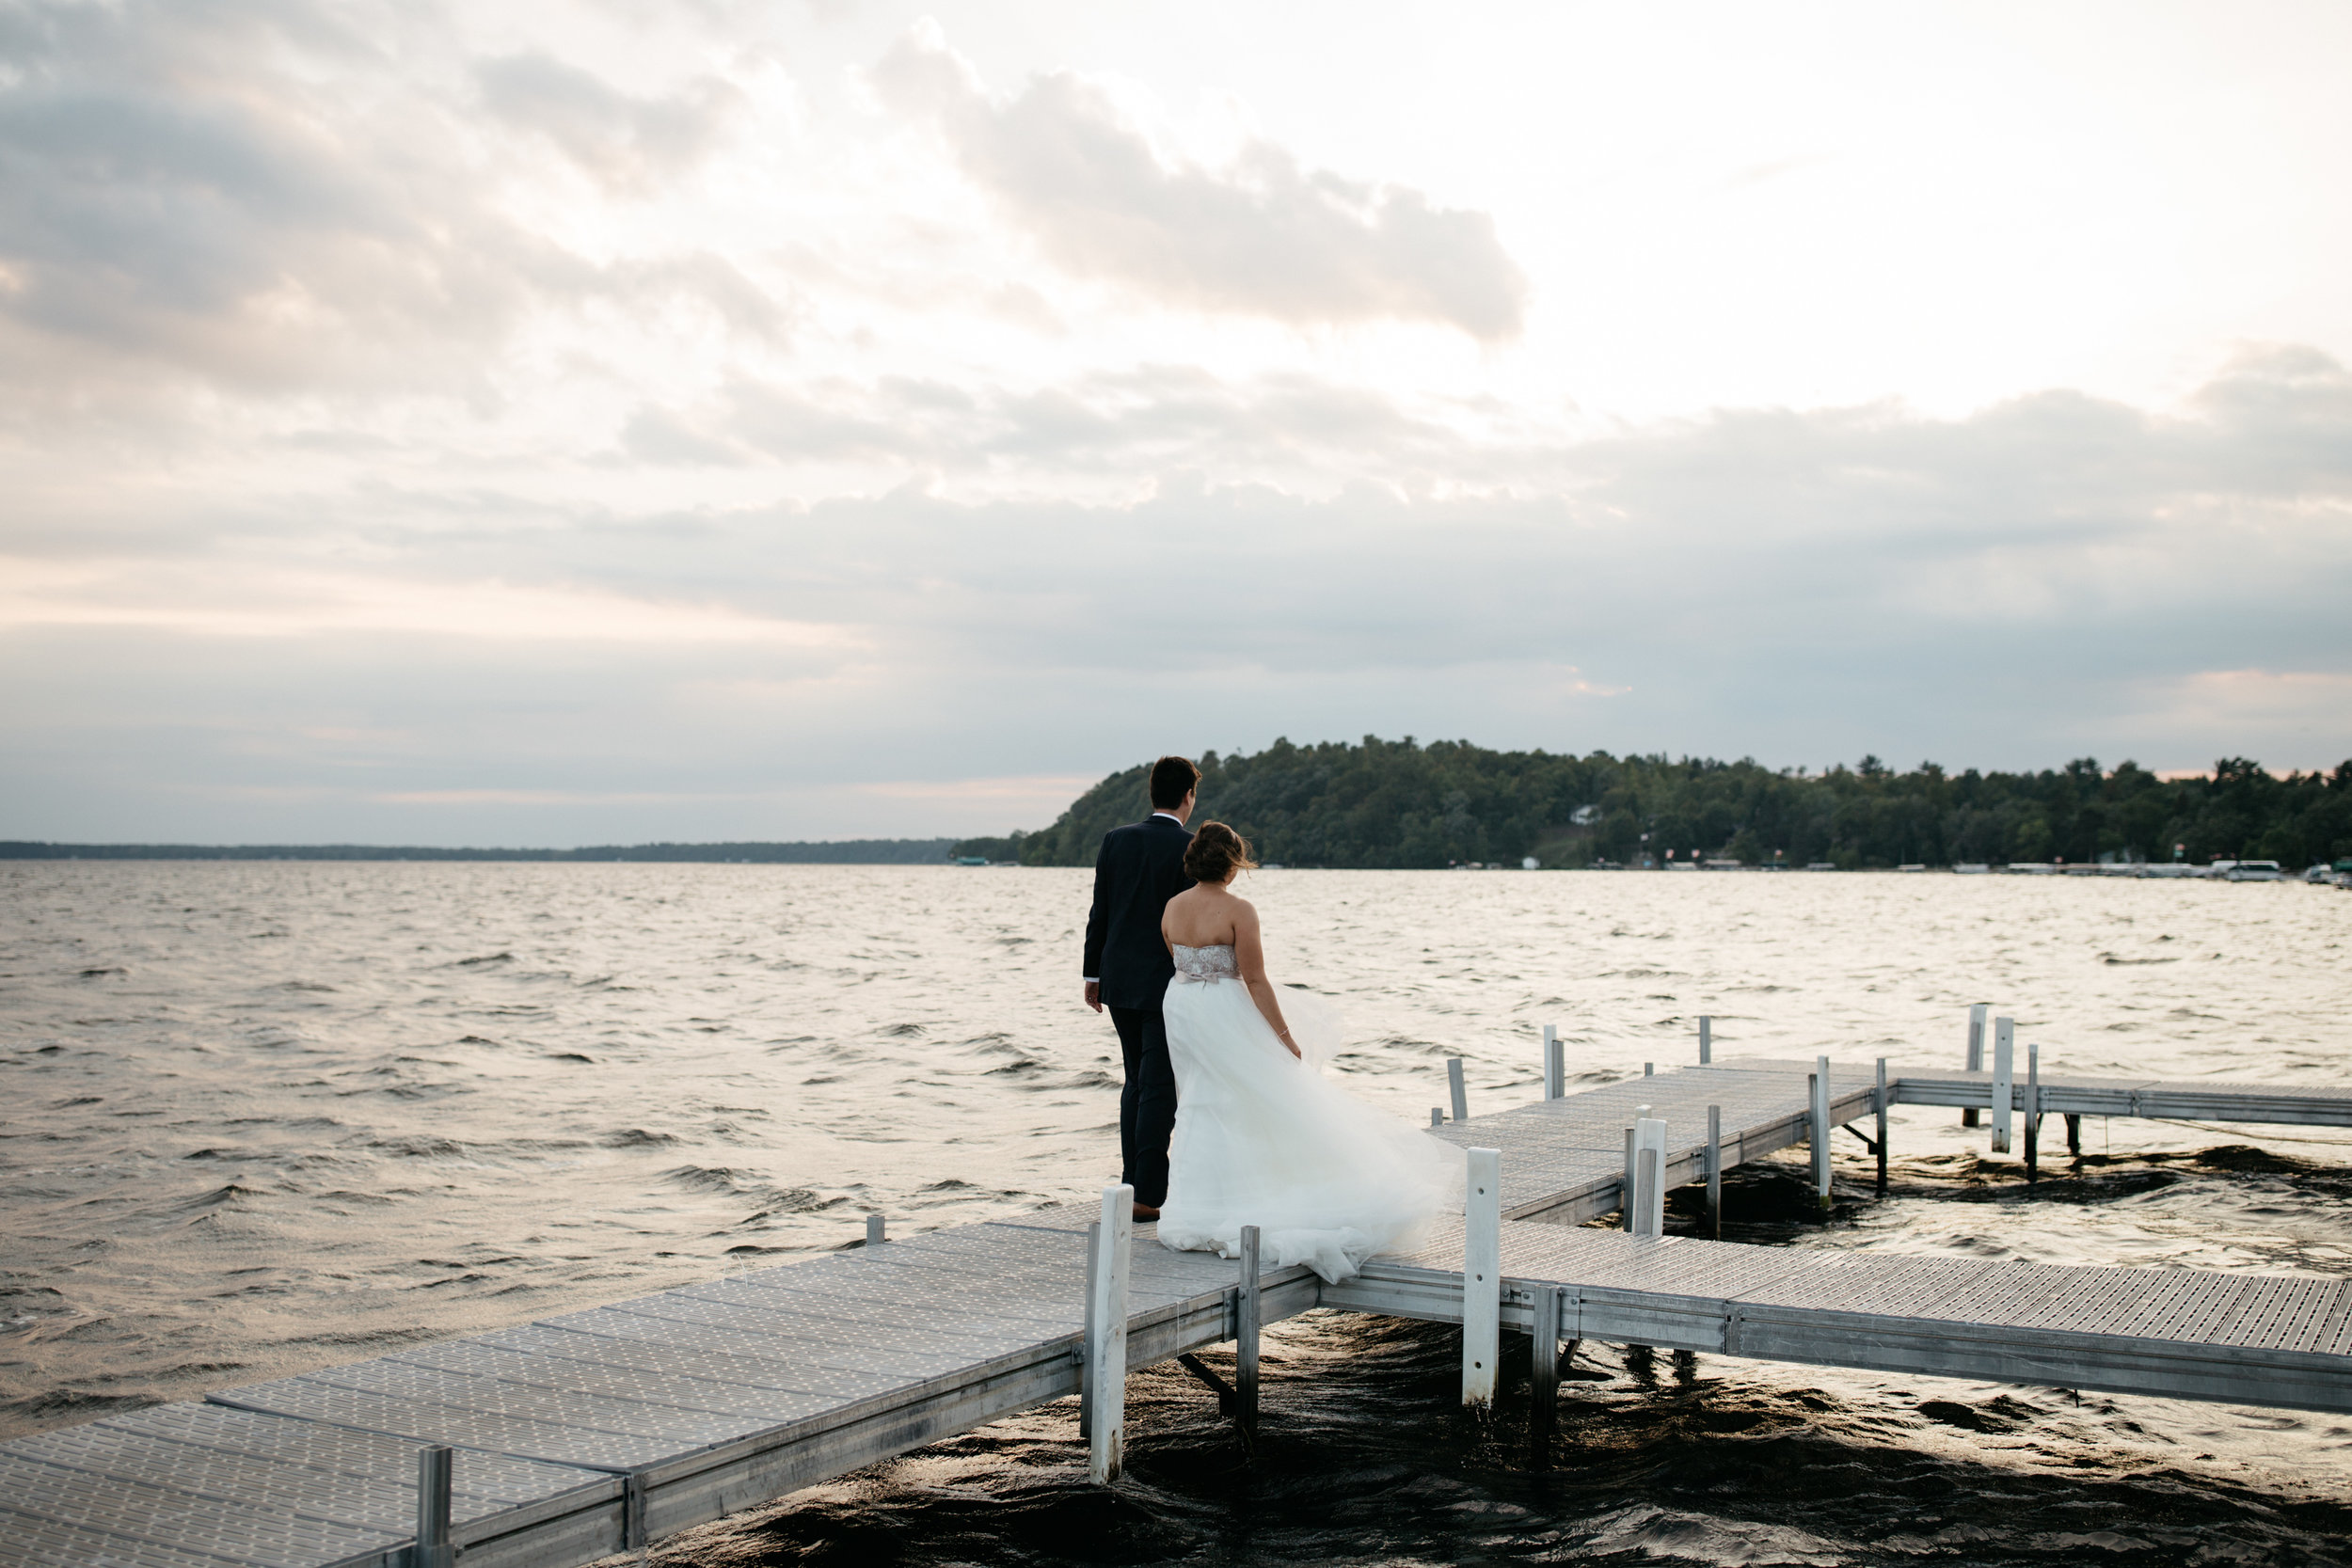 Lakeside wedding photos during sunset at Grand View Lodge by Britt DeZeeuw Photography